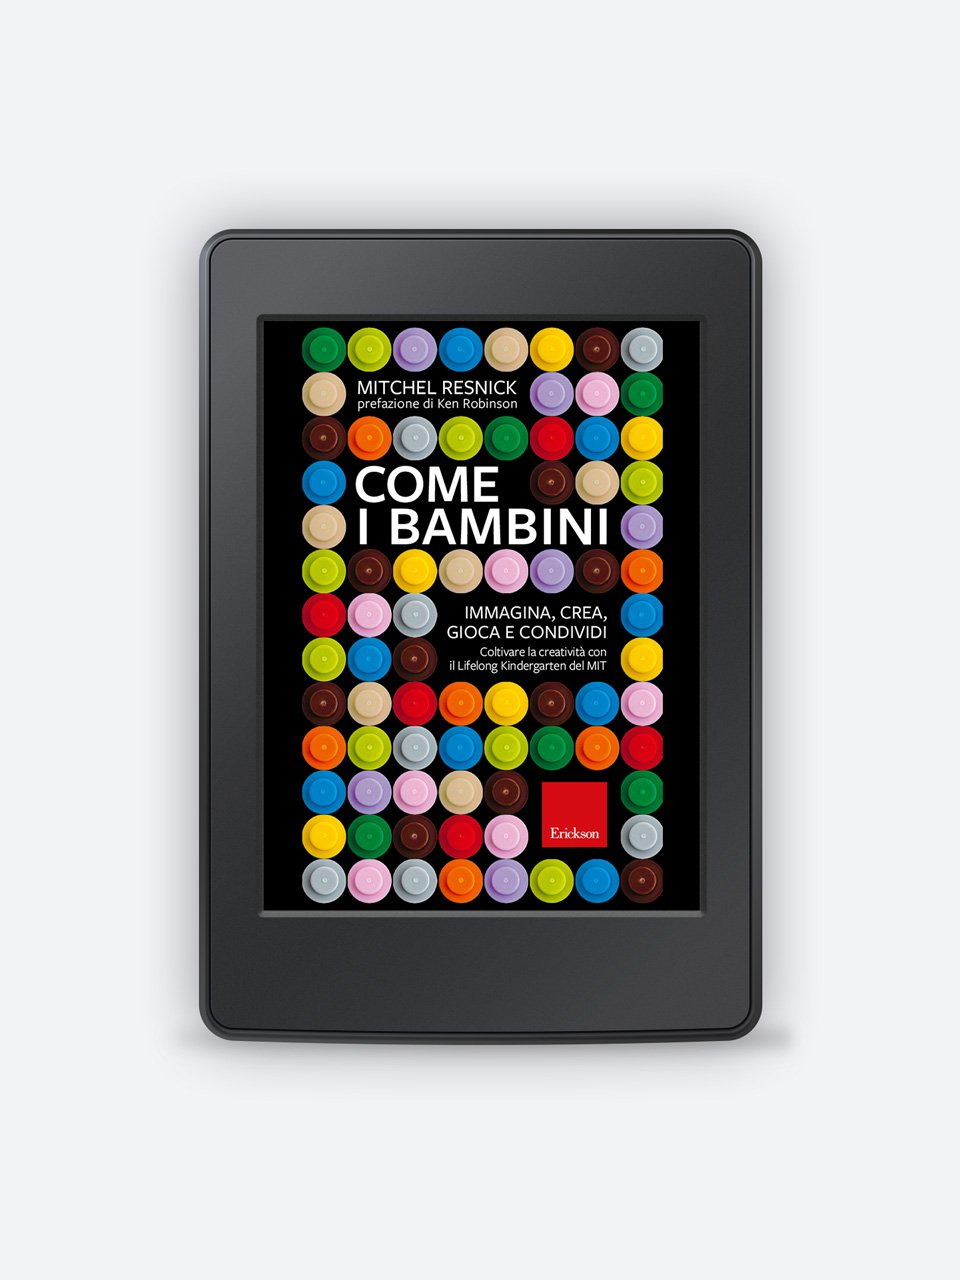 Come i bambini Ebook - ePub2 - Erickson Eshop